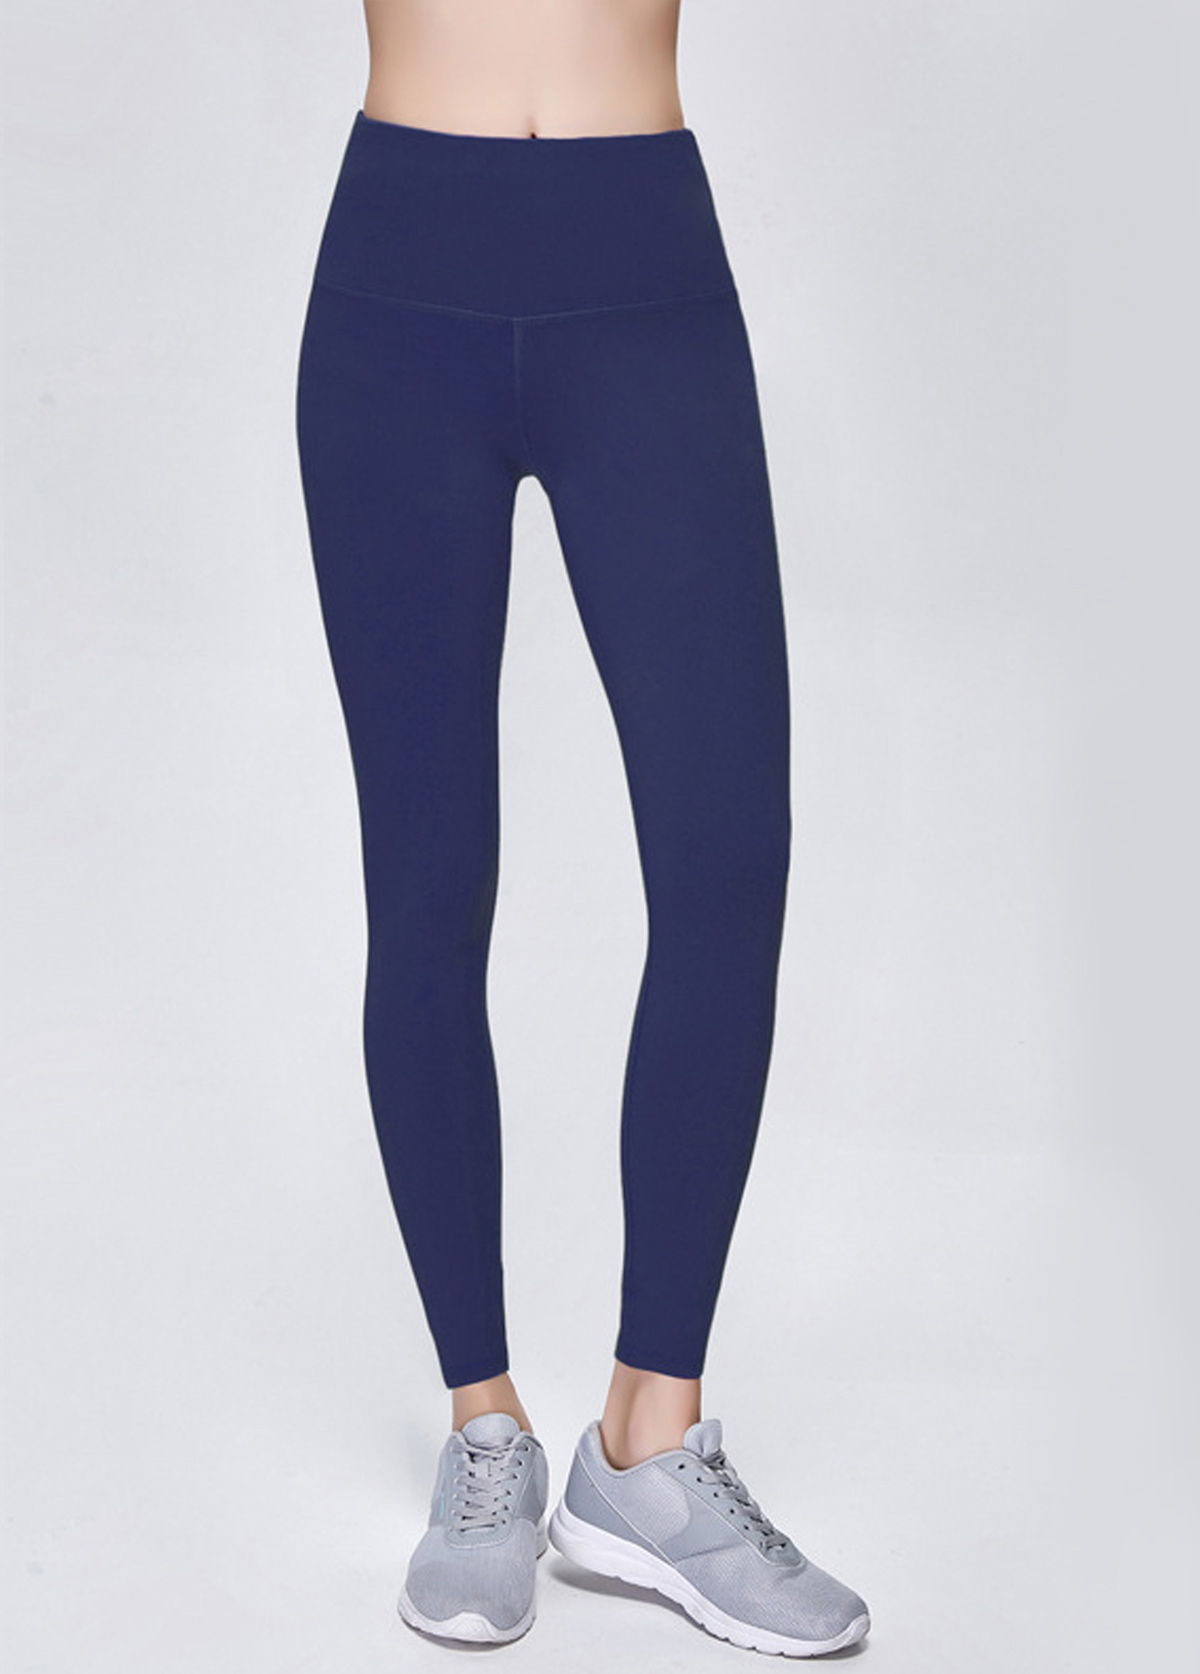 High Waist Navy Blue Elastic Quick Drying Yoga Pants